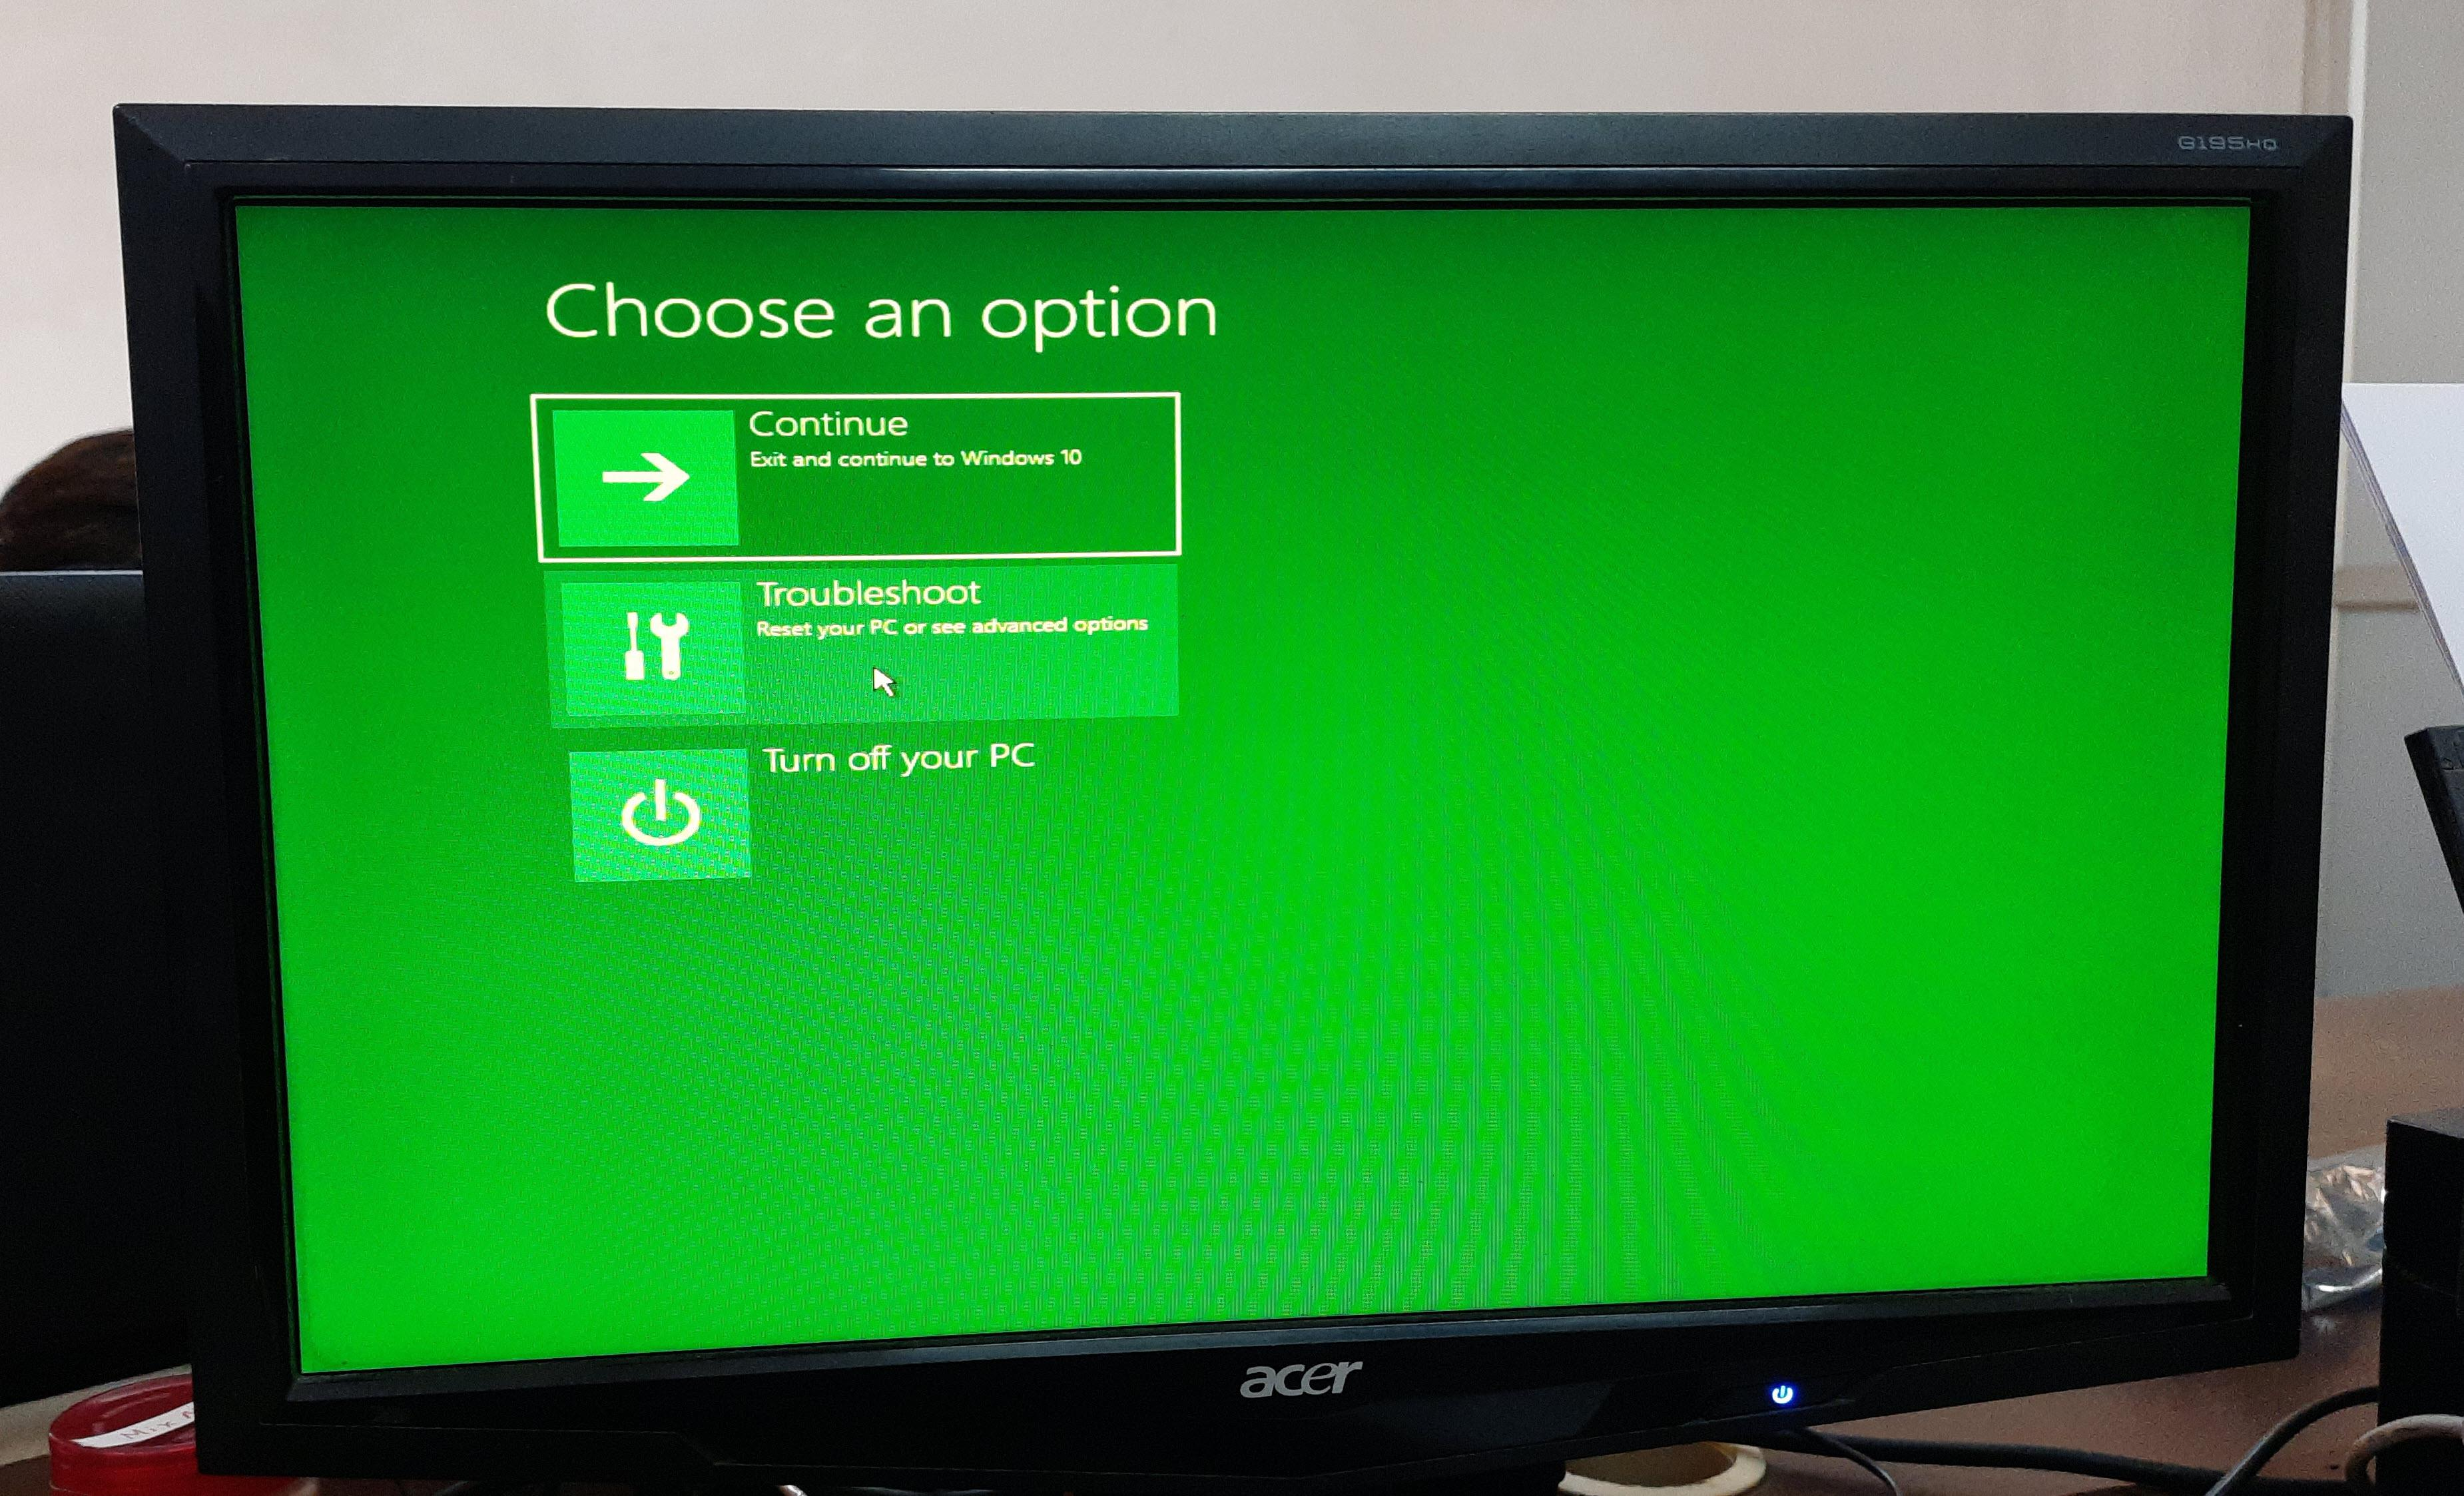 green tint on monitor